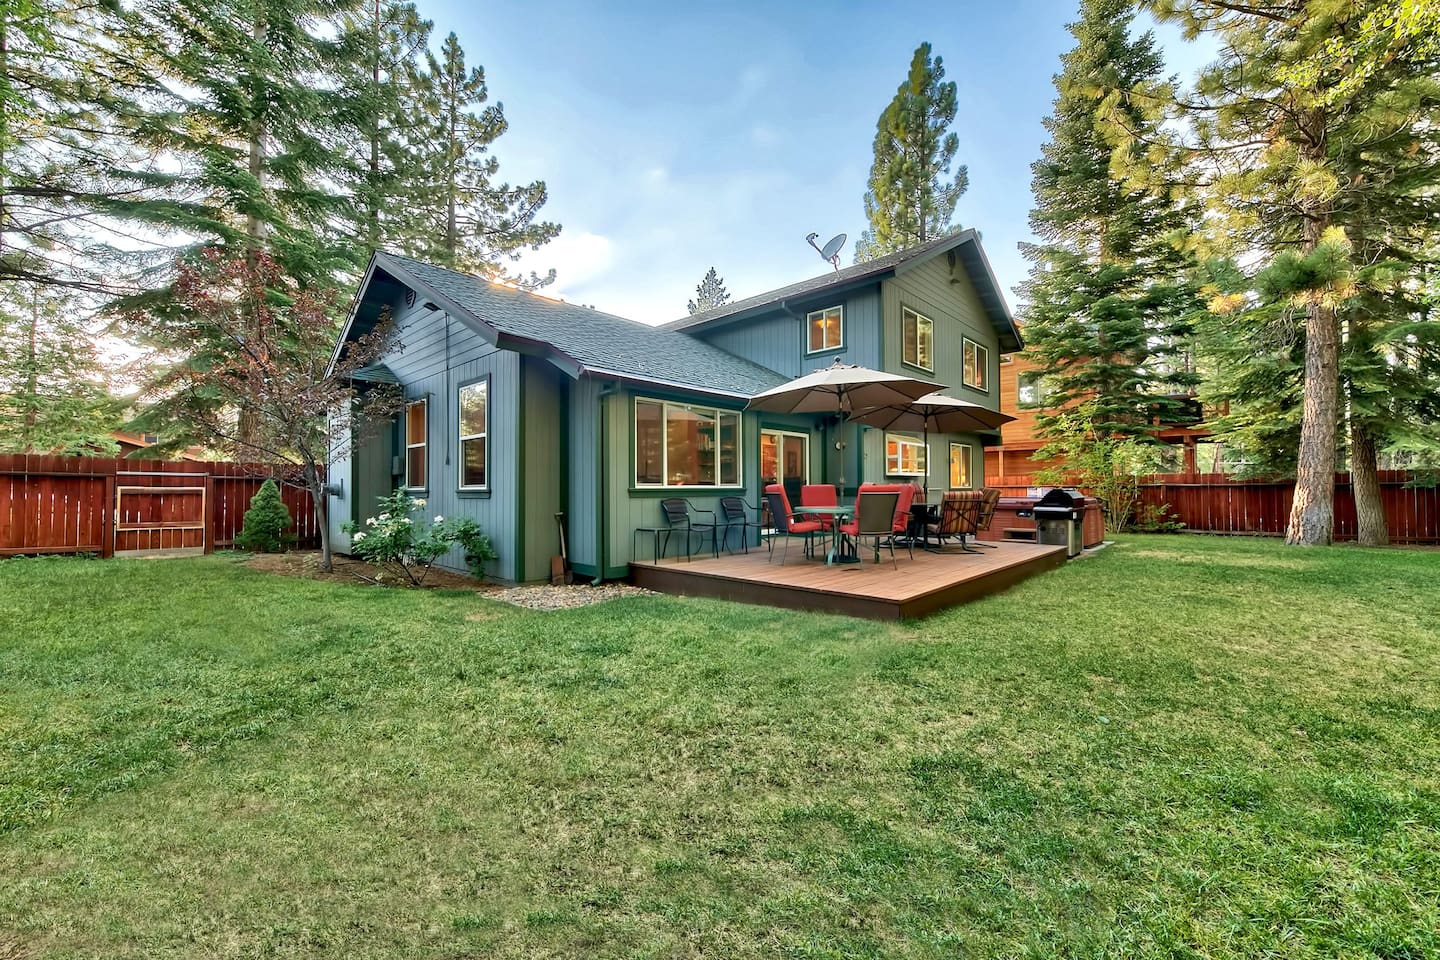 Outdoor adventures await at this South Lake Tahoe vacation rental home!